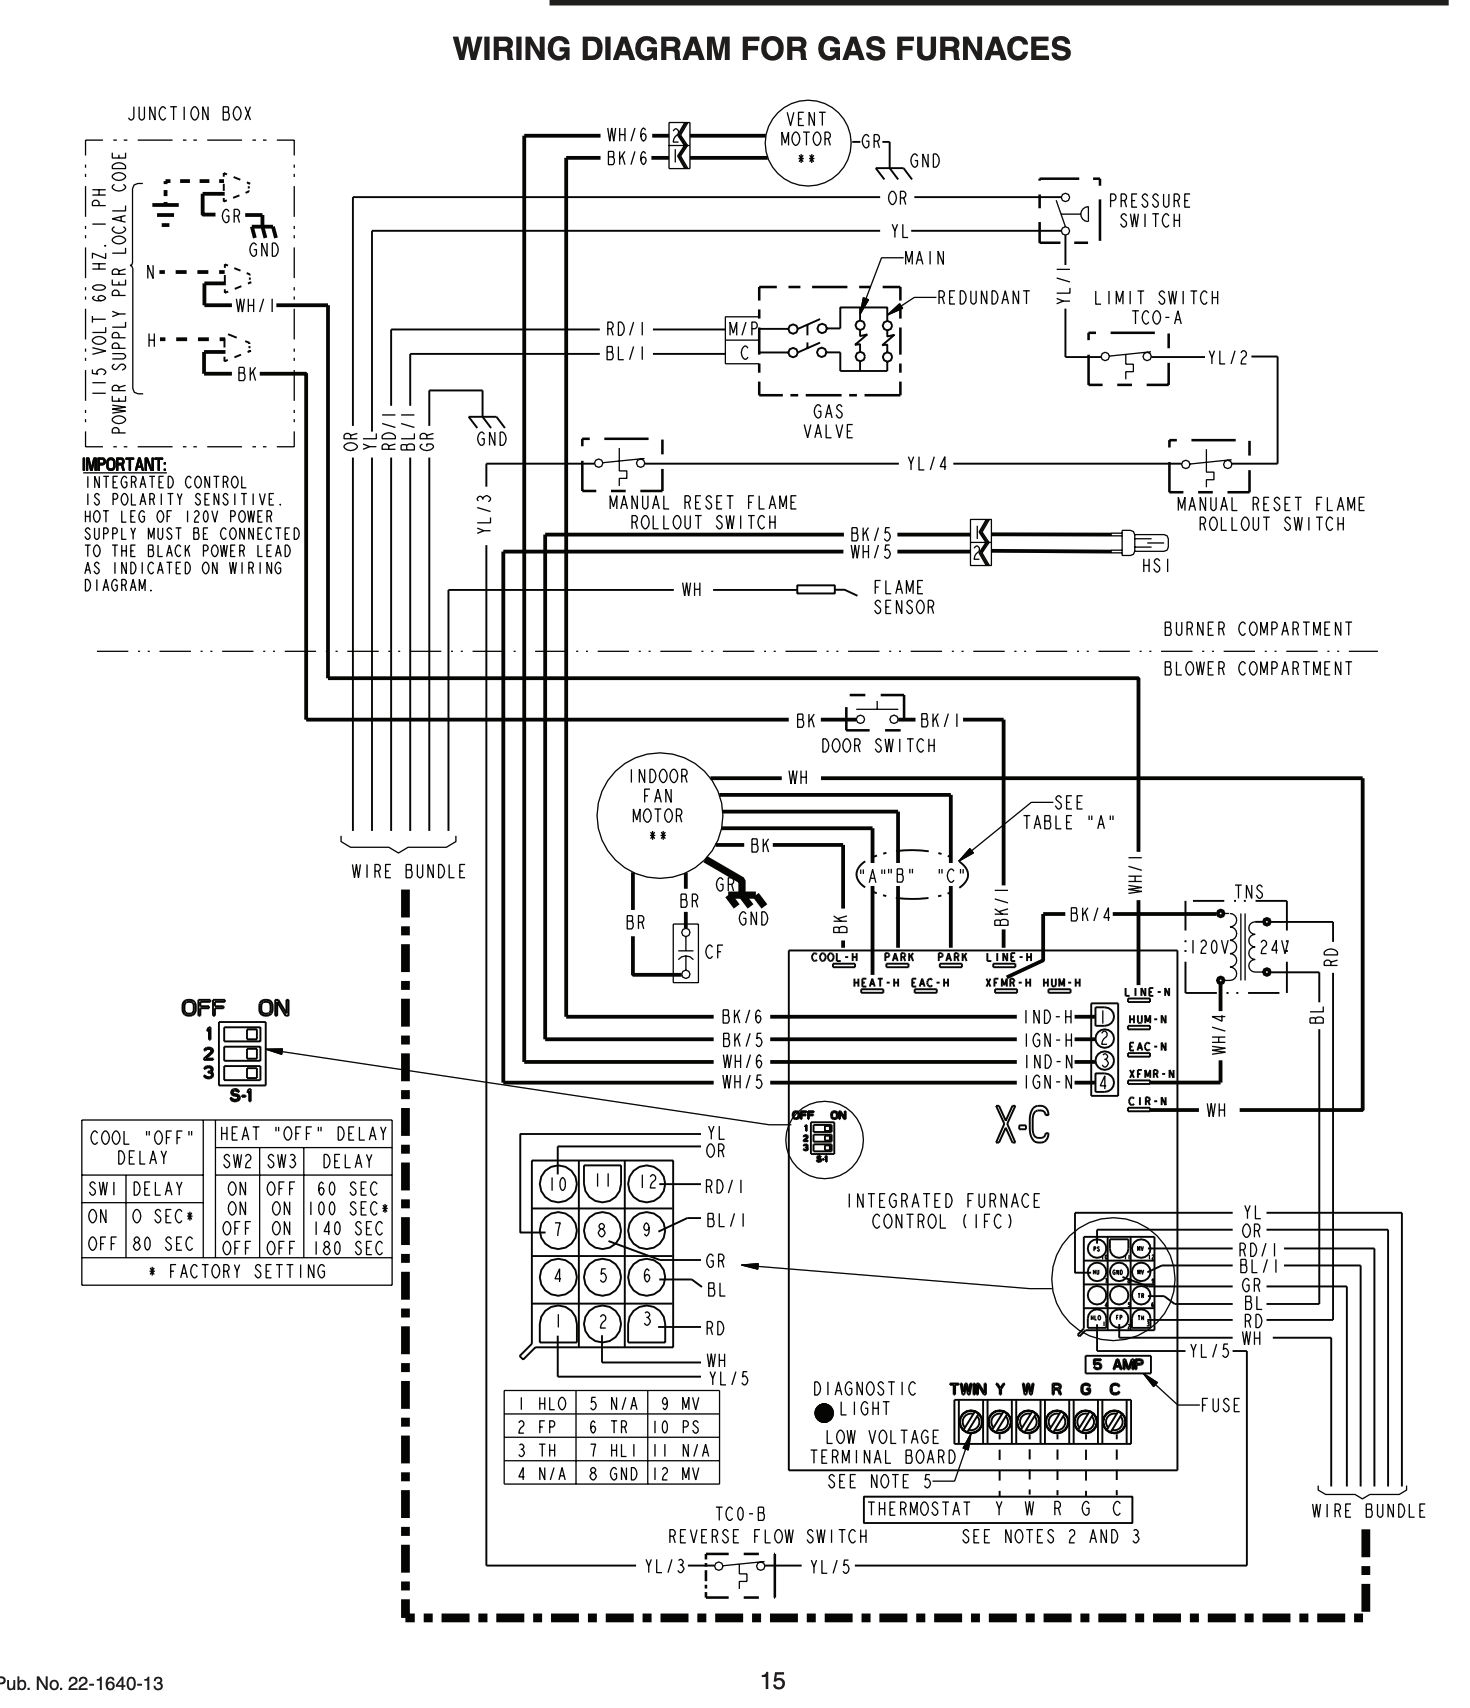 trane rooftop hvac wiring diagrams index listing of wiring diagrams rh leaseletter info